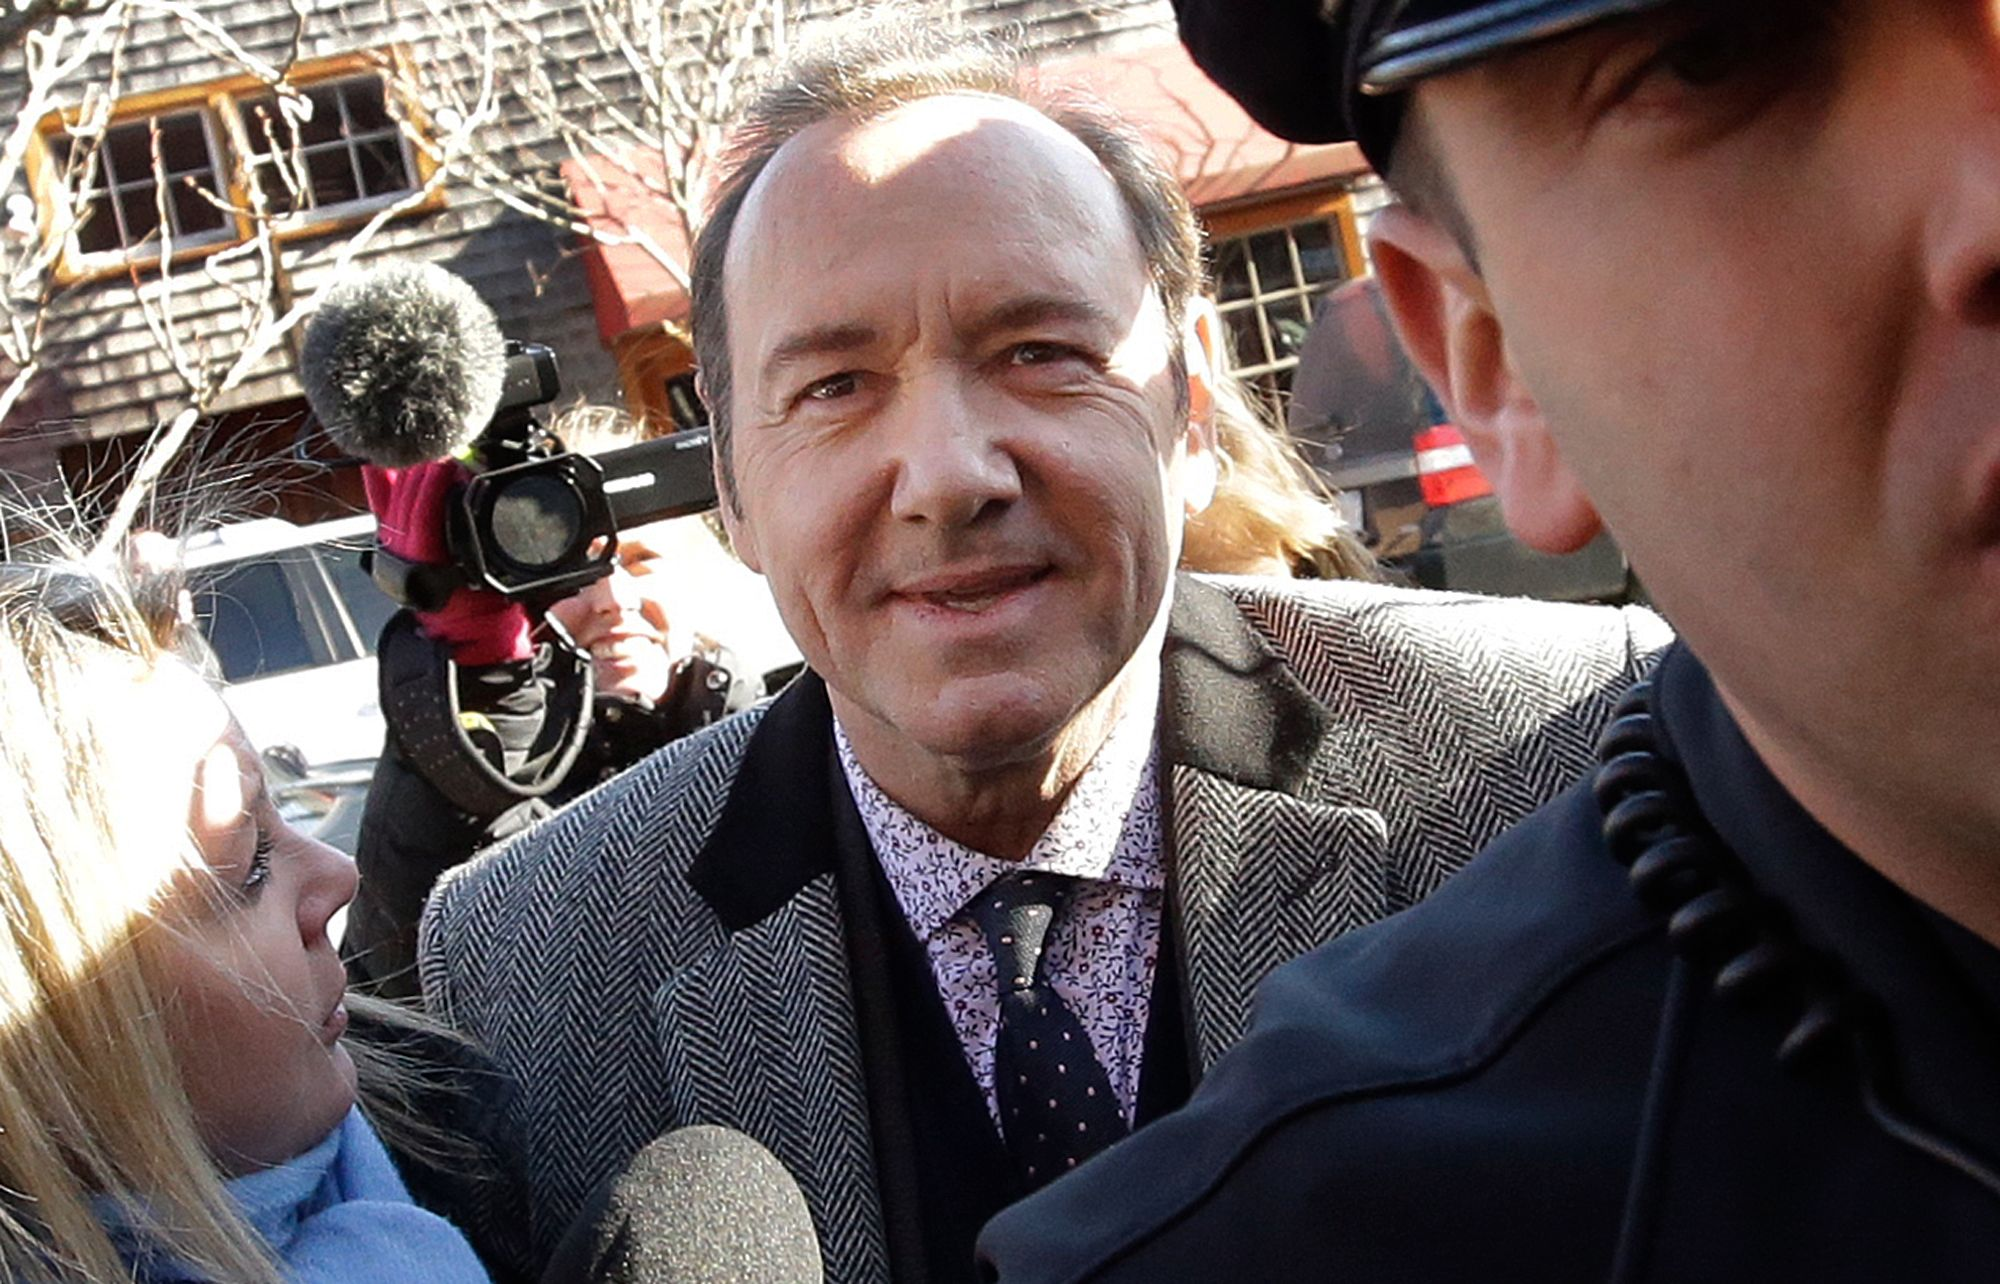 Kevin Spacey makes first court appearance to face sex-crime charge